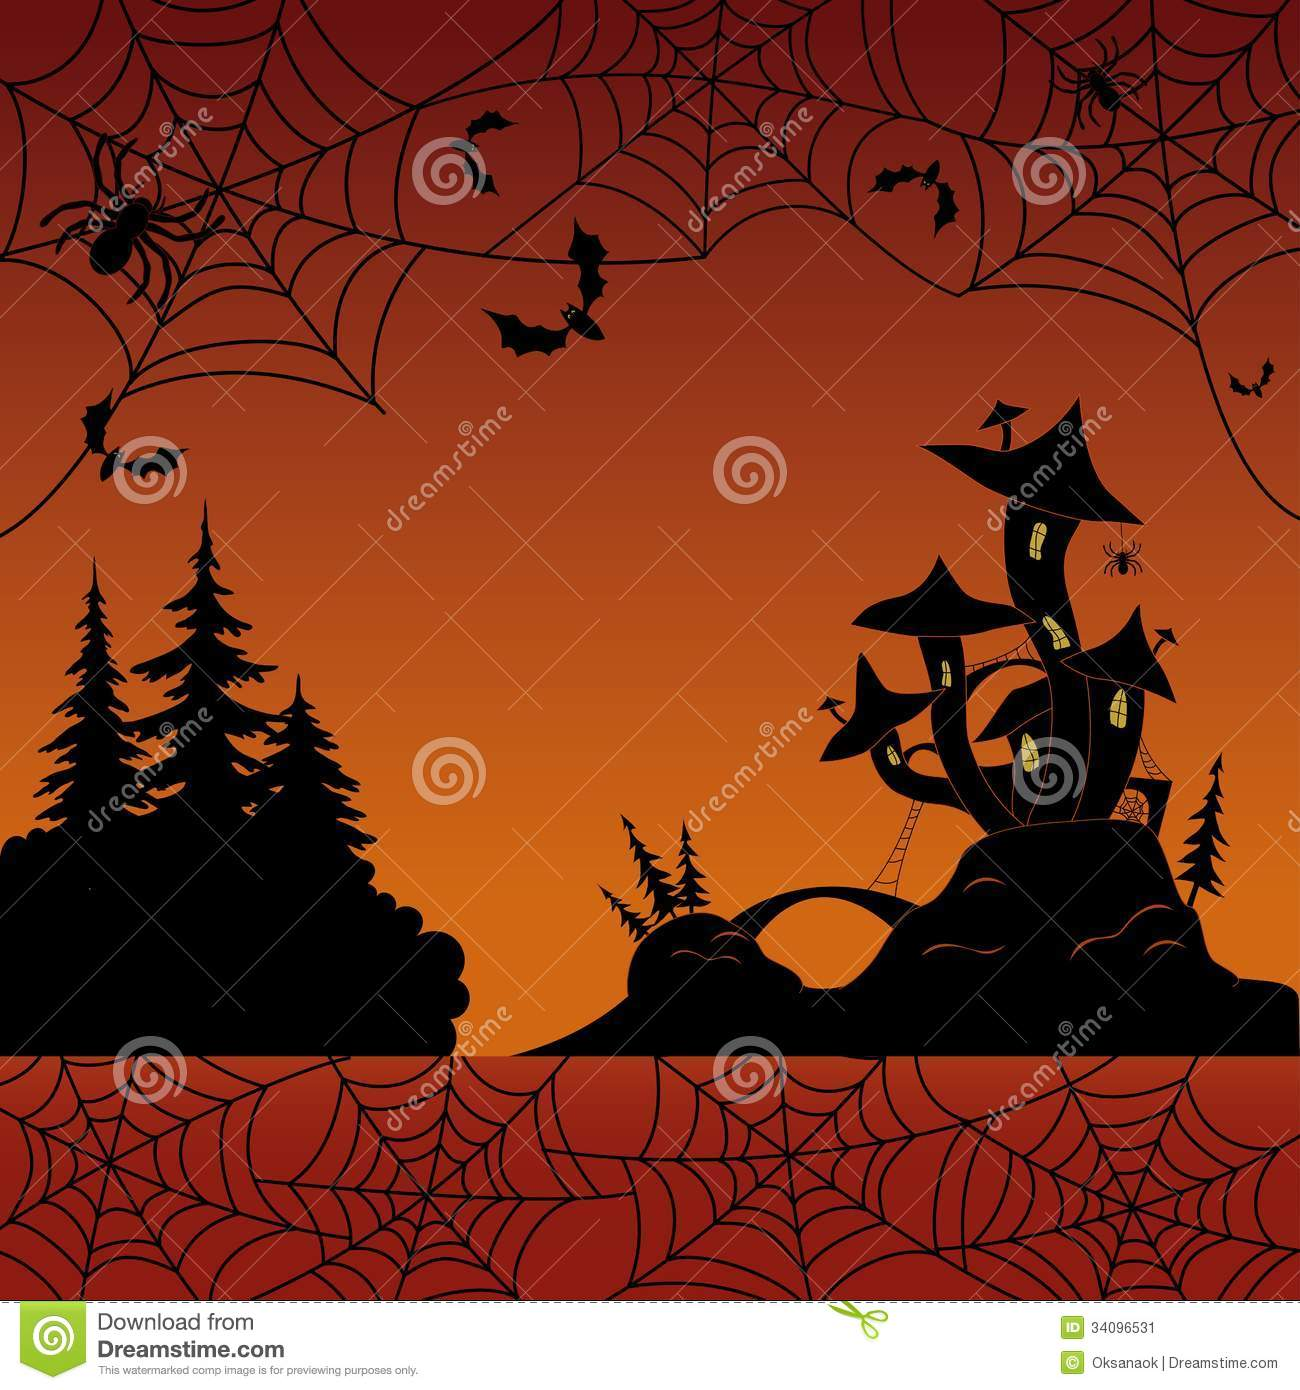 related recipes bats and cobwebs spiders and bats and cobwebs oh my oh ...